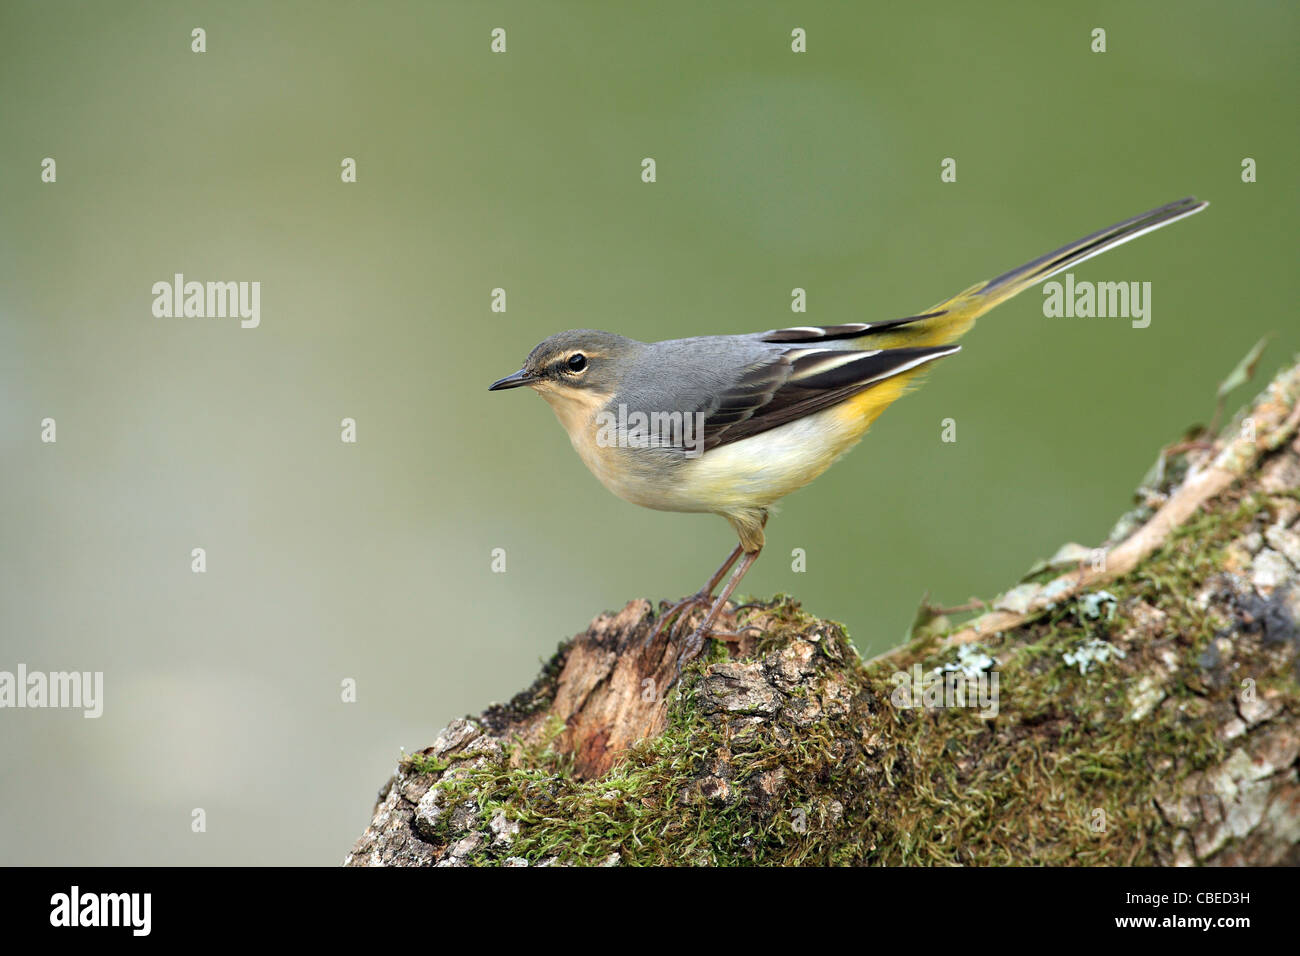 Grey Grey Wagtail (Motacilla cinerea). Juvenile standing on a mossy log. - Stock Image